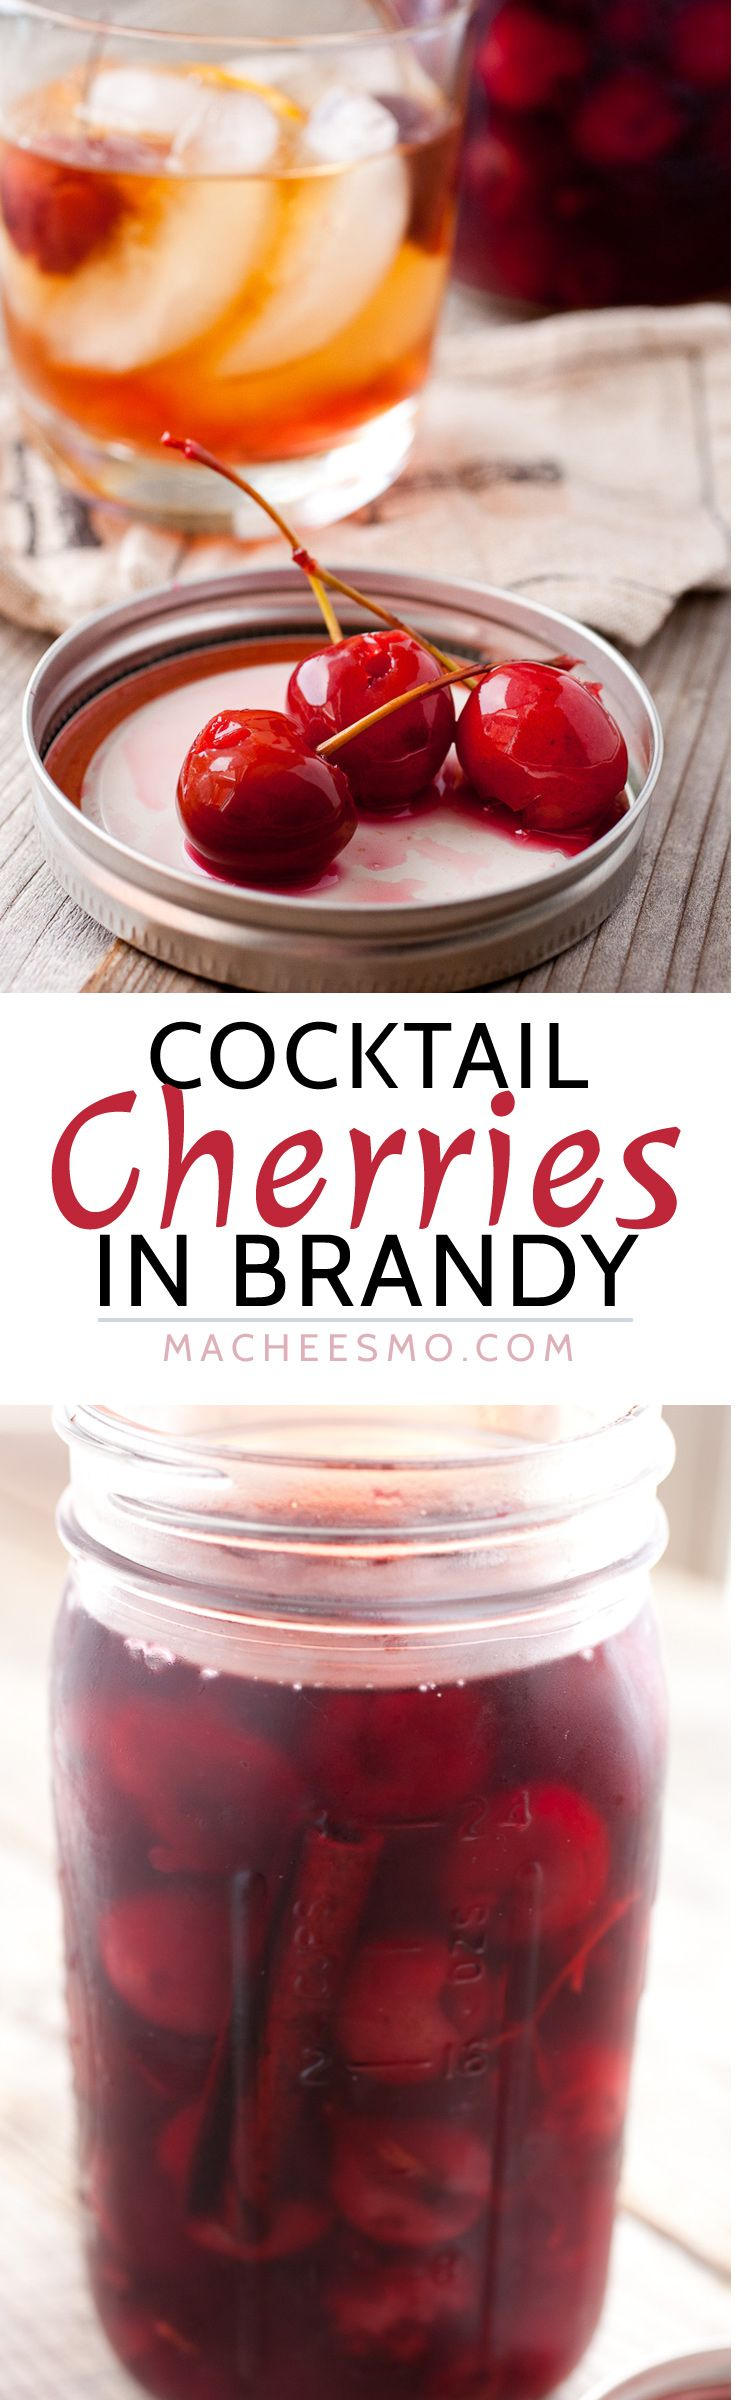 Homemade Cocktail Cherries: These ripe, fresh cherries are jarred in a spiced brandy mixture for a few weeks and perfect in any dark cocktail. So much better than the store-bought bright red version! | macheesmo.com